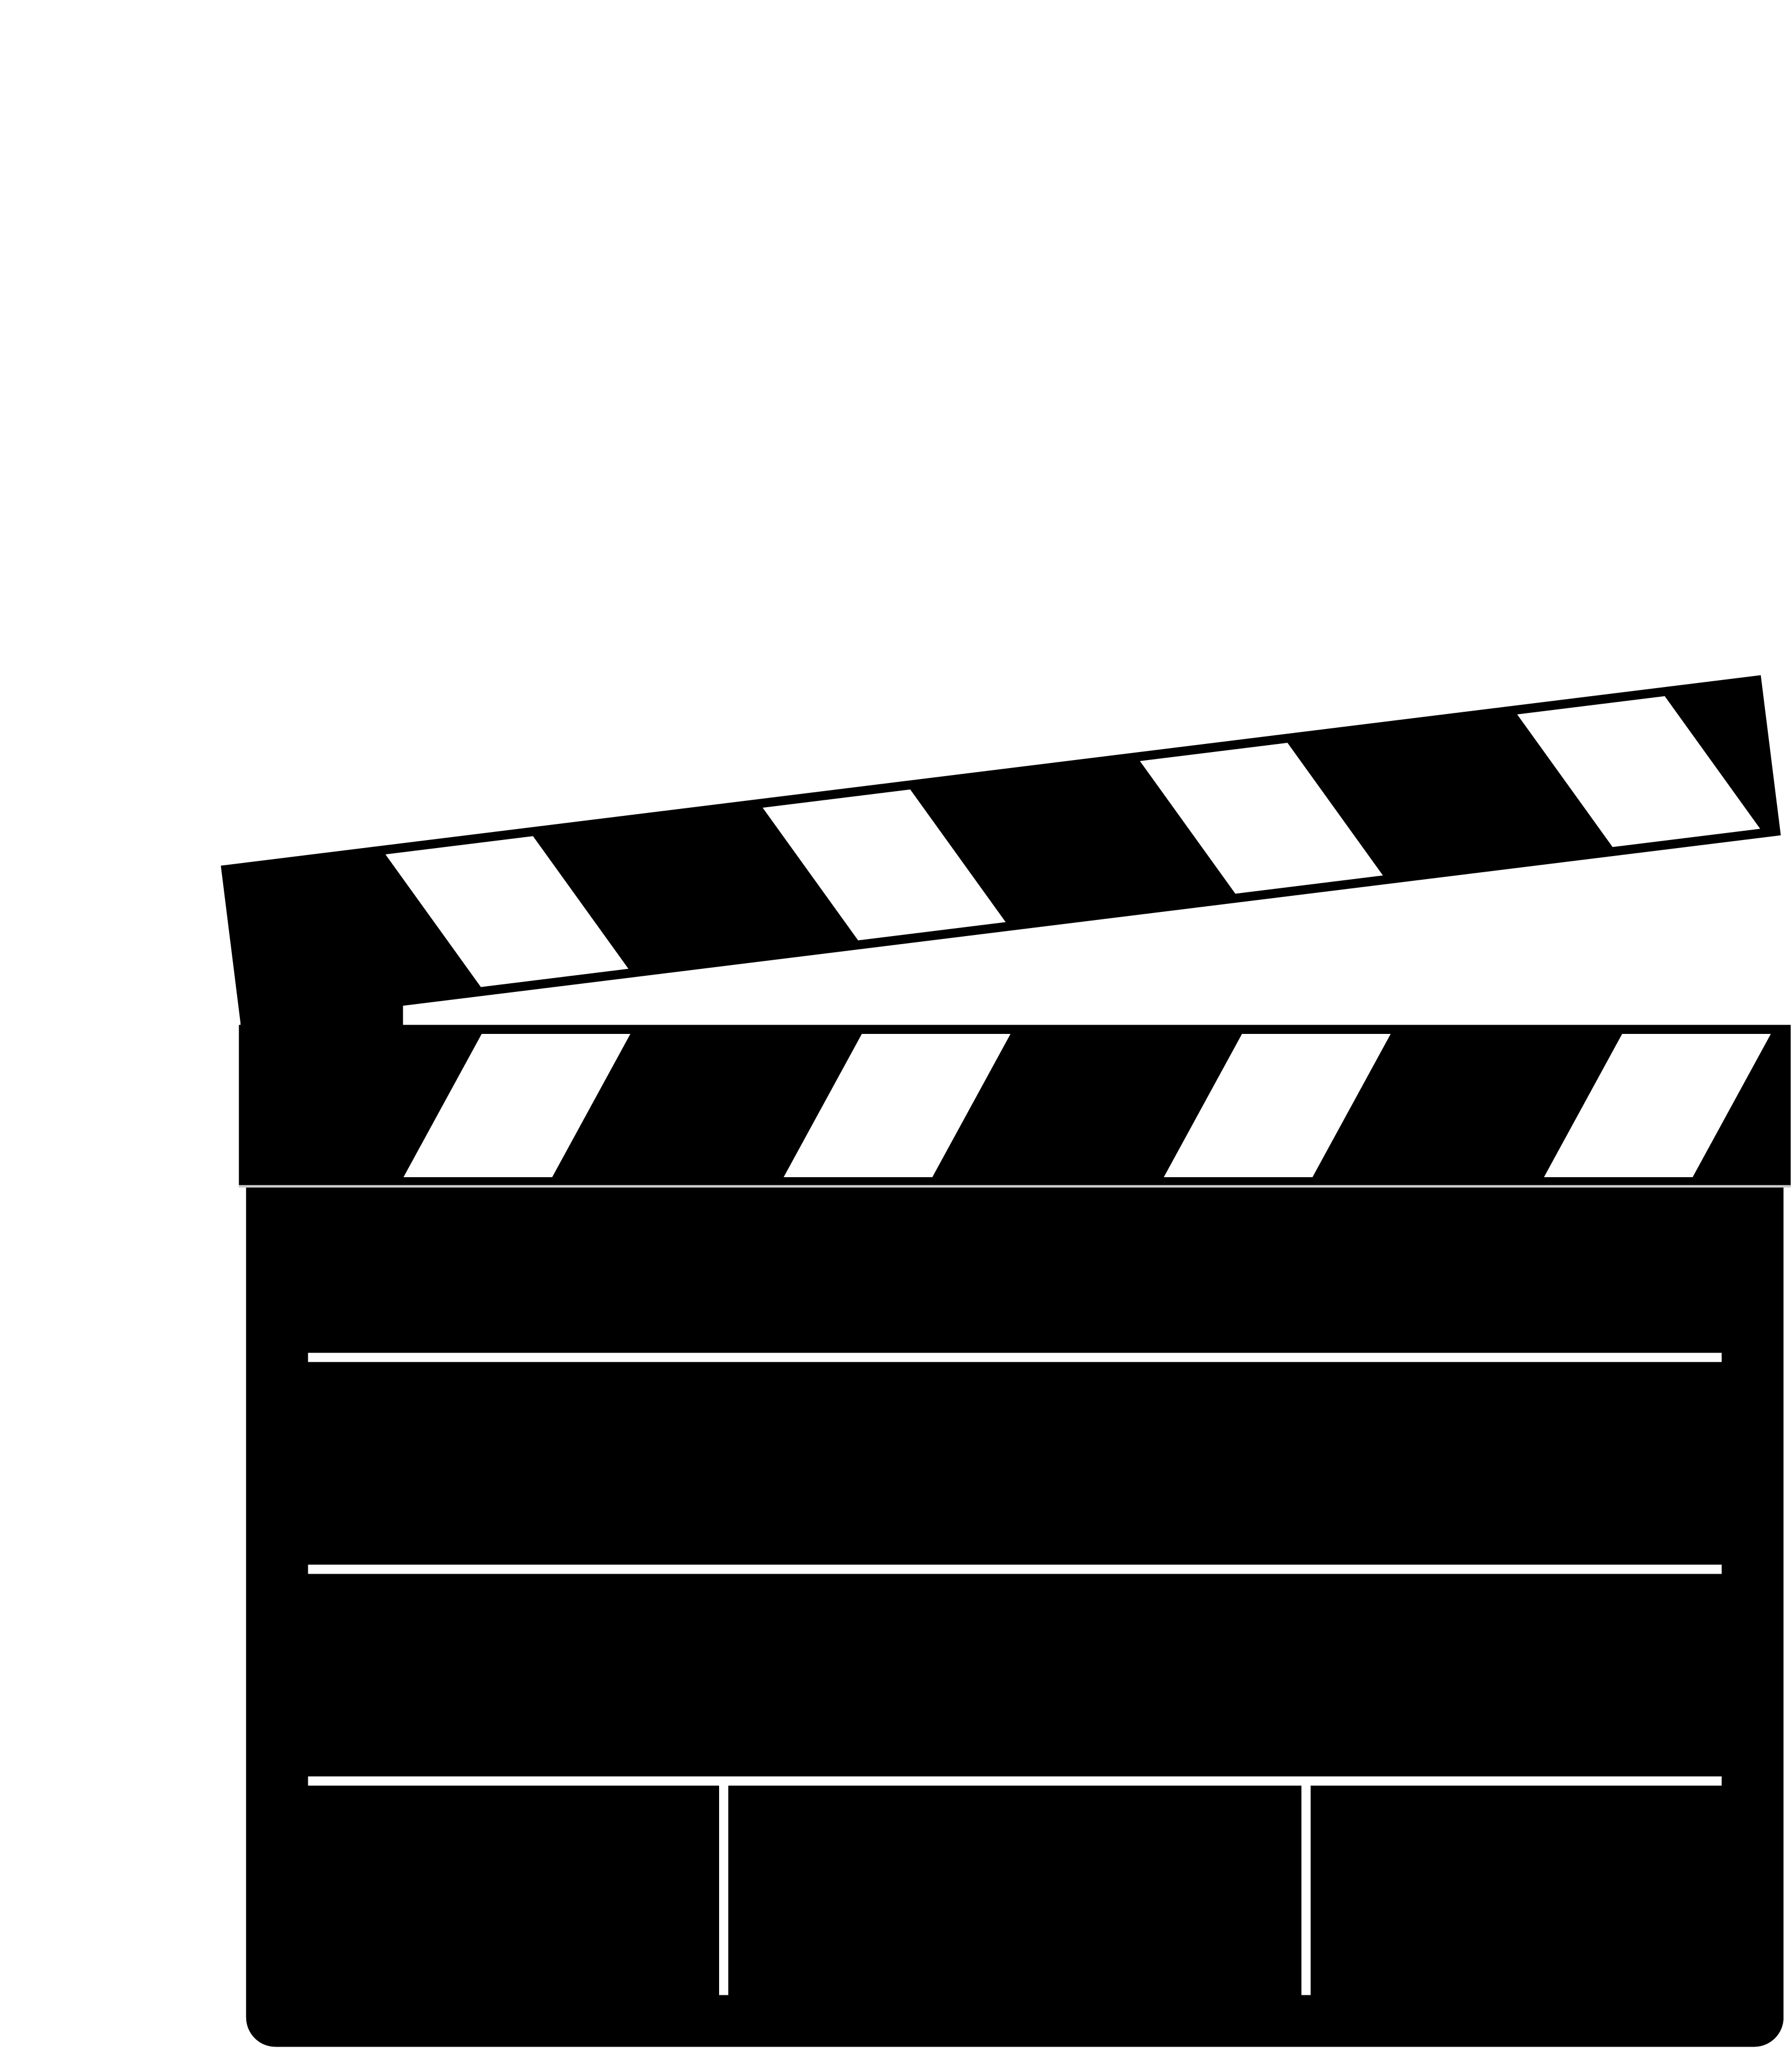 Clapperboard Free Png Image PNG Image